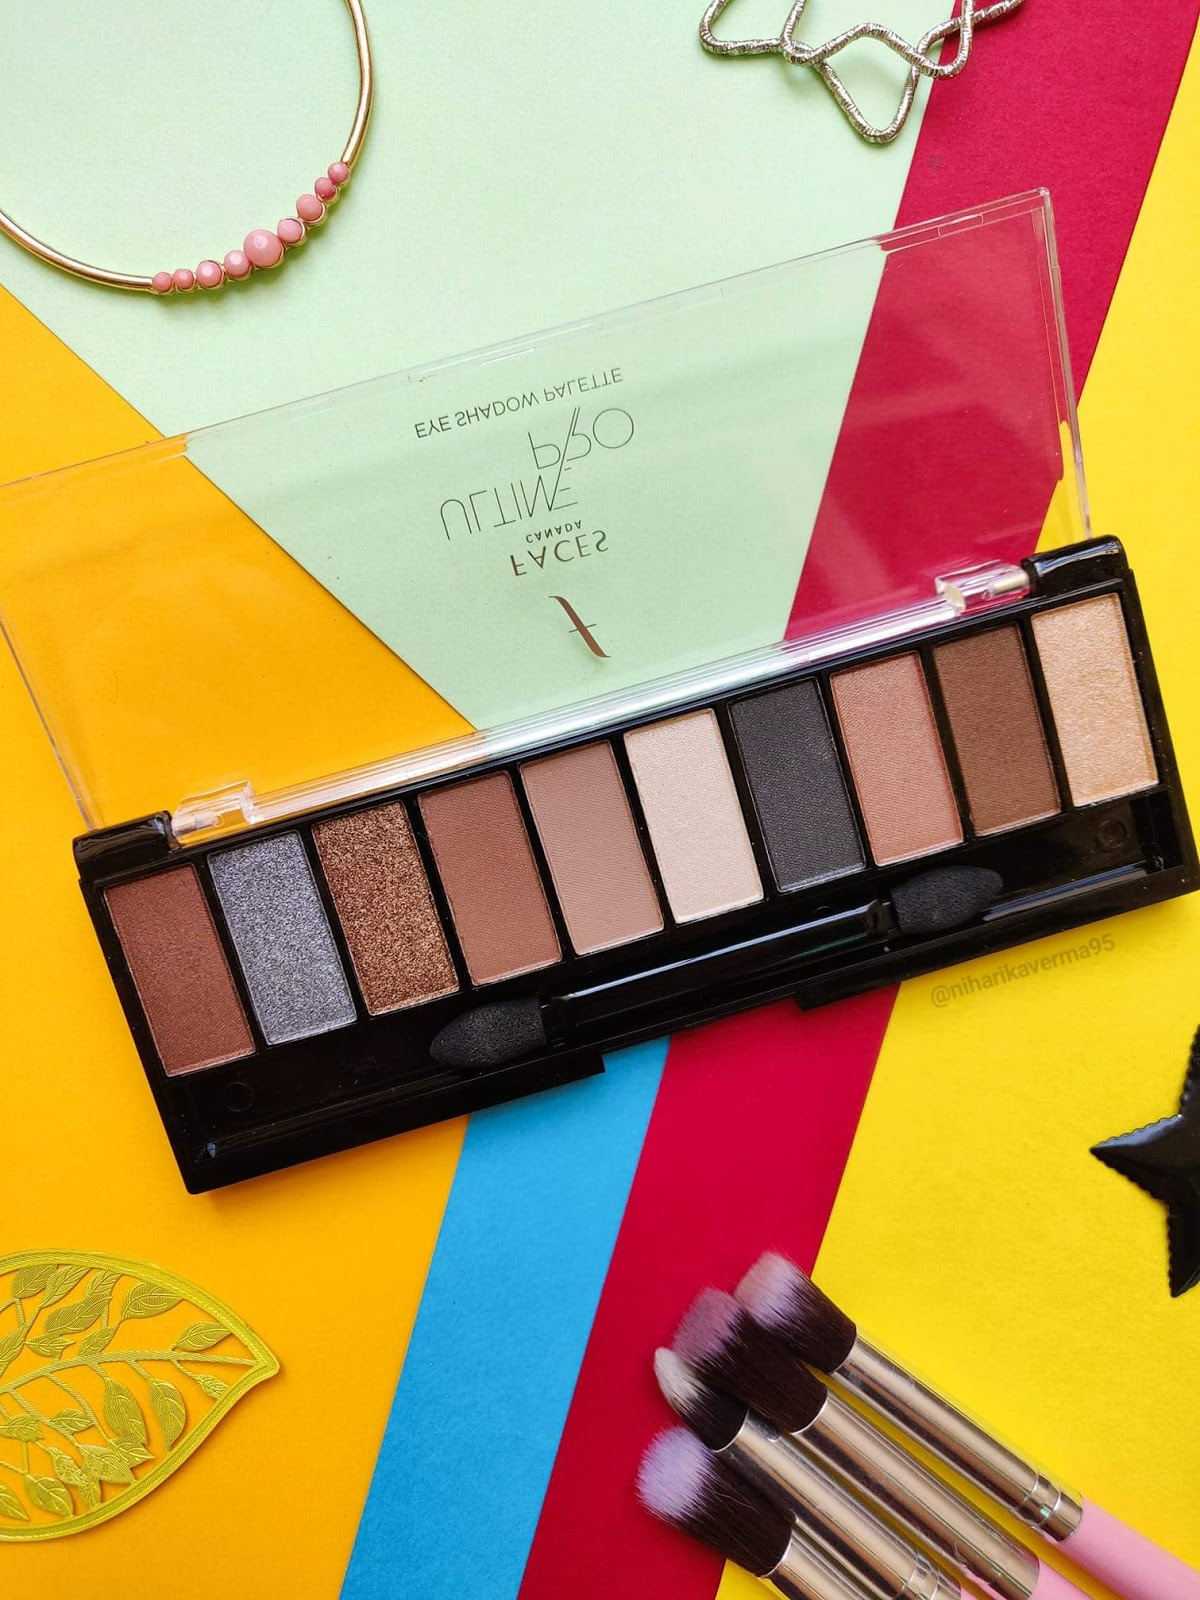 Top 5 Eyeshadow Palettes in India under Rs.1000/- and their Swatches - FACES Nude Palette